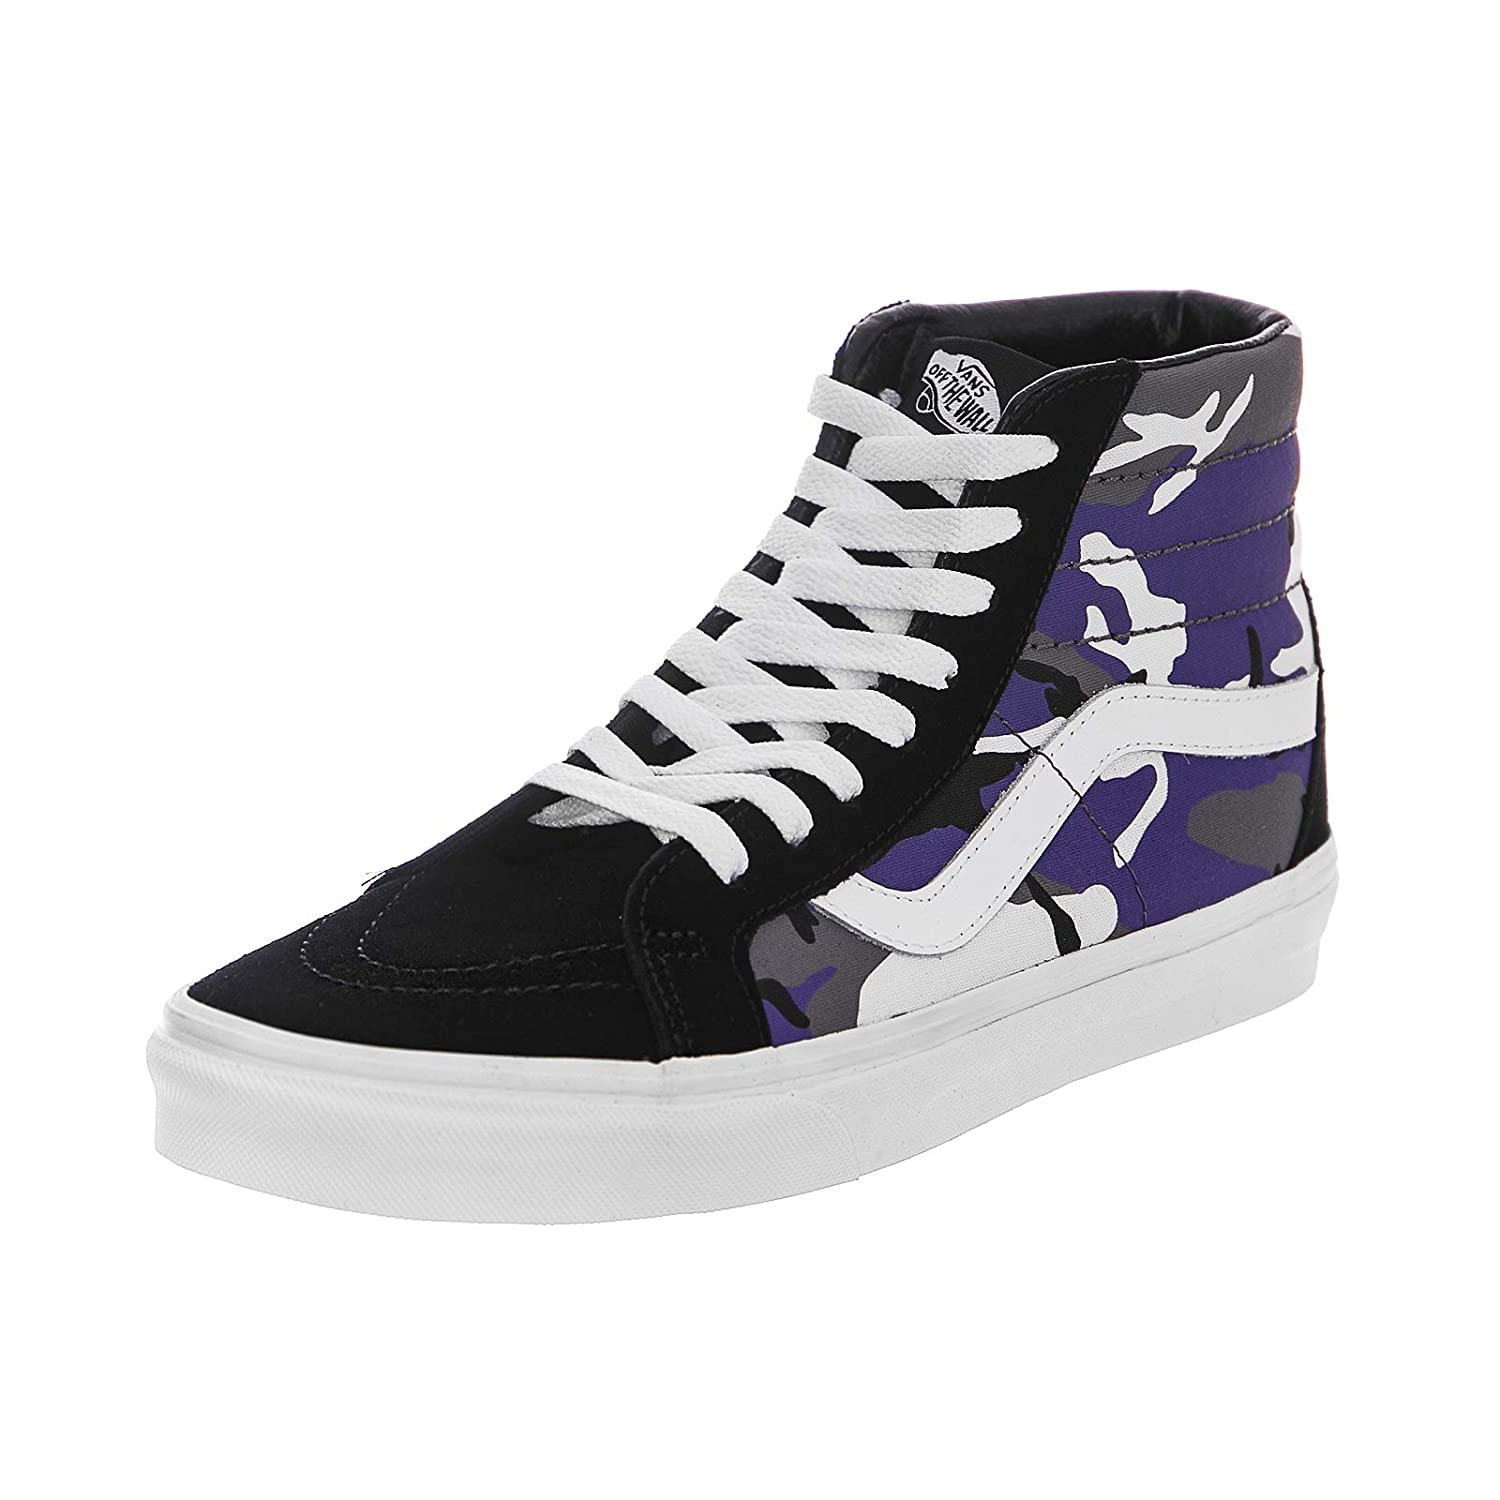 23a165f6db Vans - Trainers - UA SK8-Hi Reissue (Pop Camo) - Black Heliotrope True  White  Amazon.co.uk  Shoes   Bags